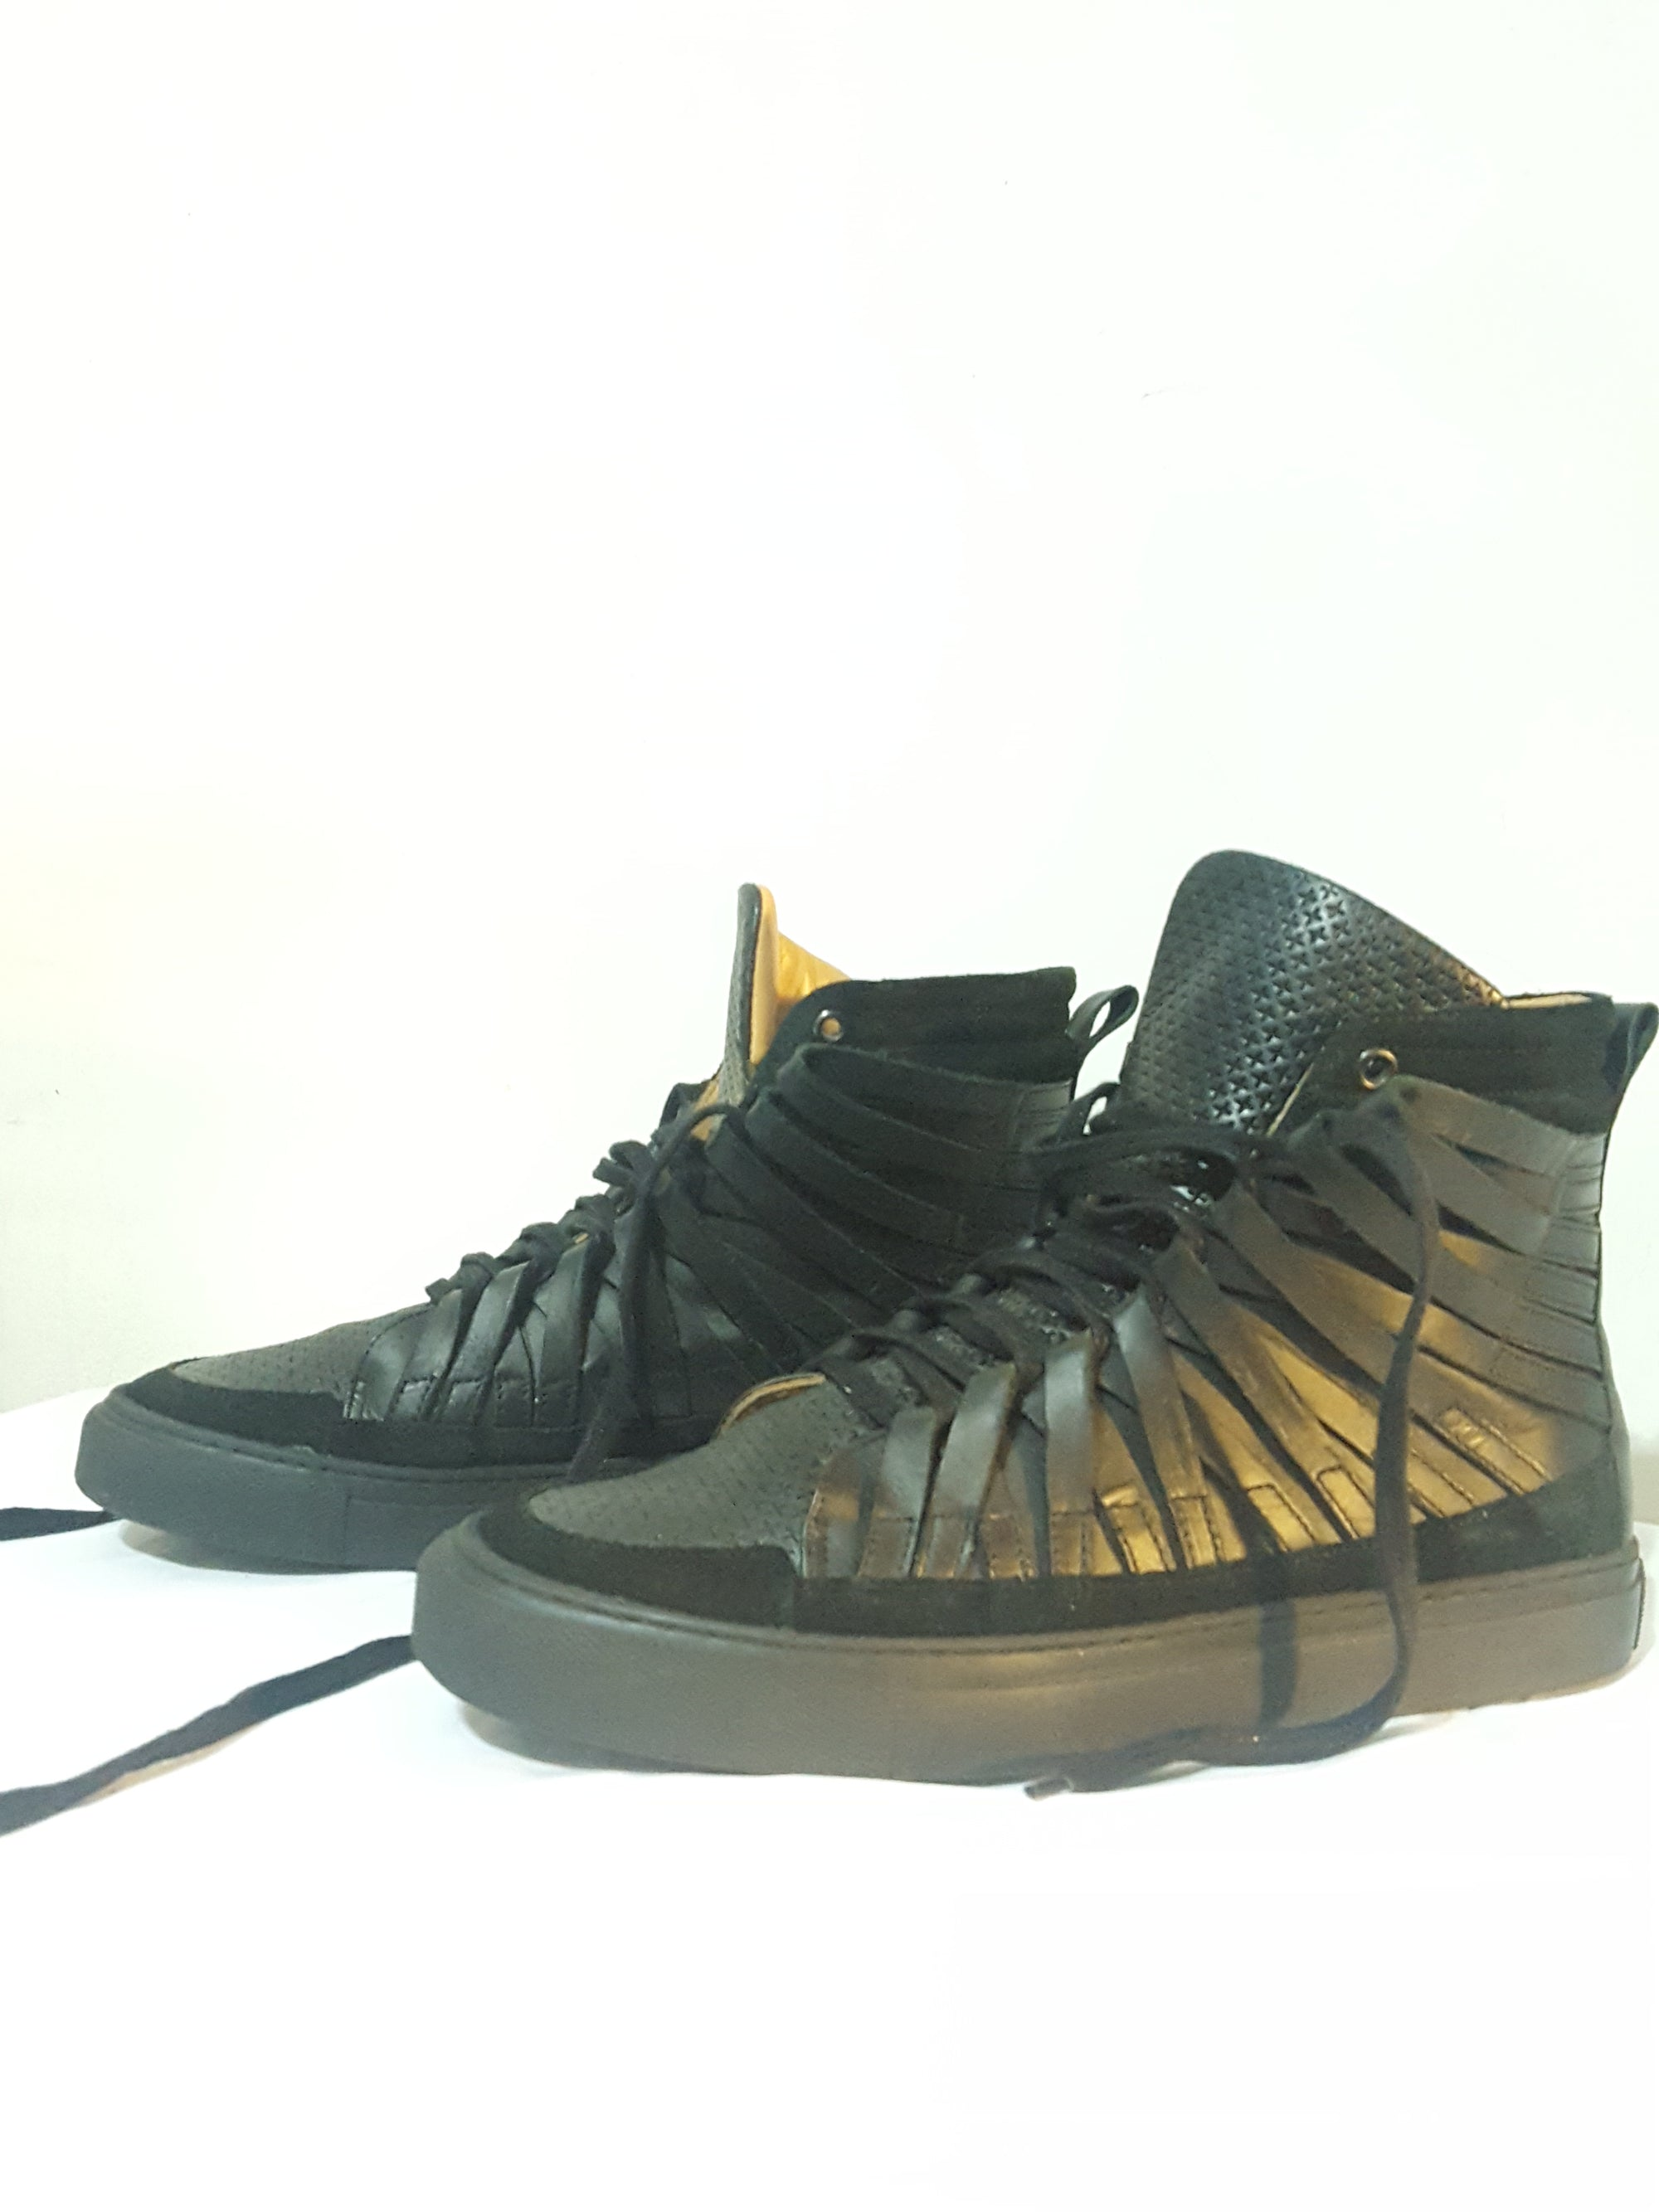 Damir Doma Falco High Signature Mens Sneakers sz.41, Shoes, Damir Doma, [shop_name